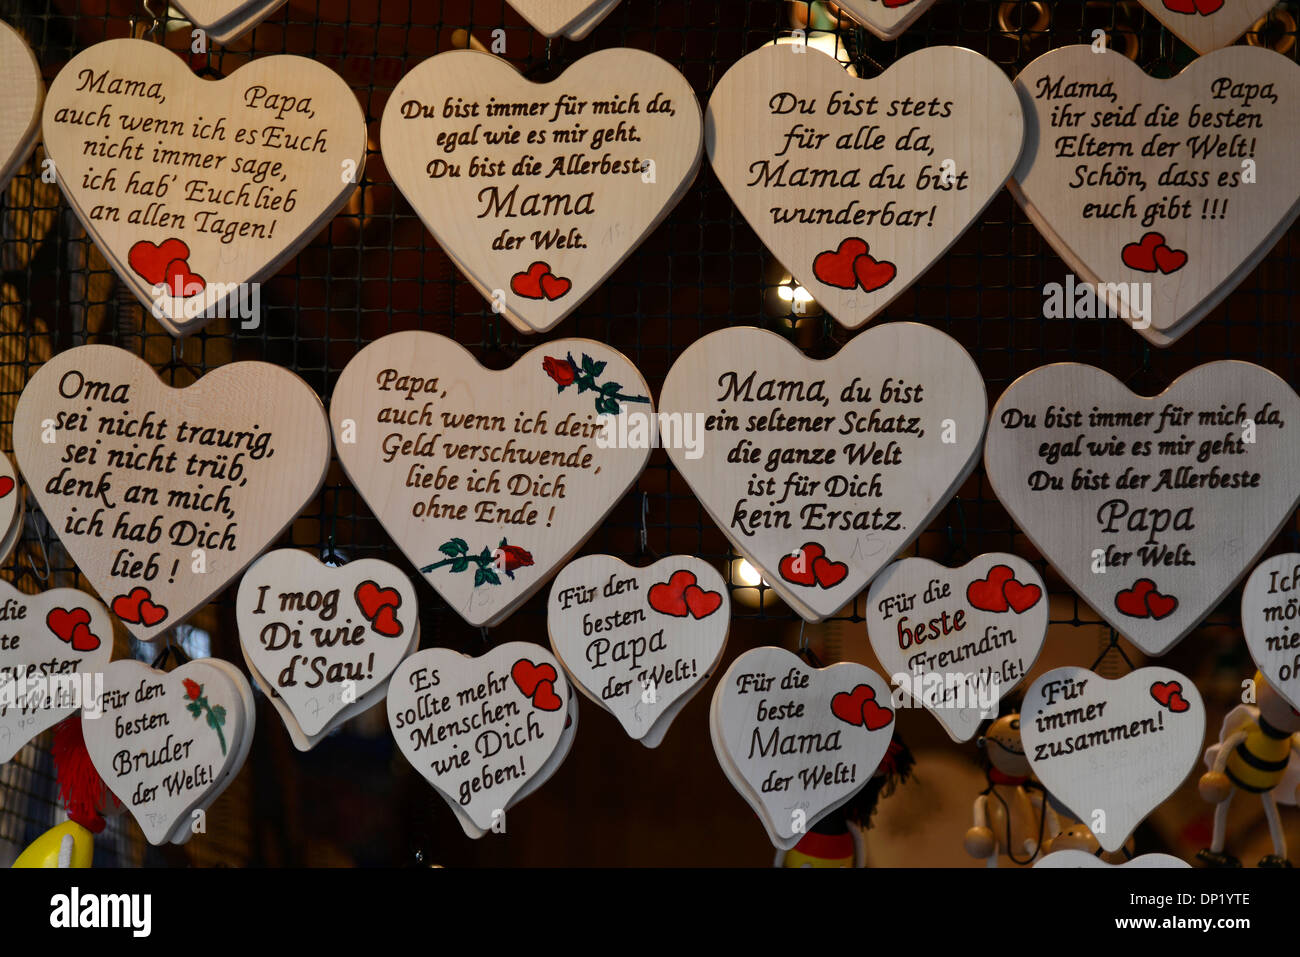 Wooden hearts with sayings in German, souvenirs at a Christmas market, Baden-Württemberg, Germany - Stock Image